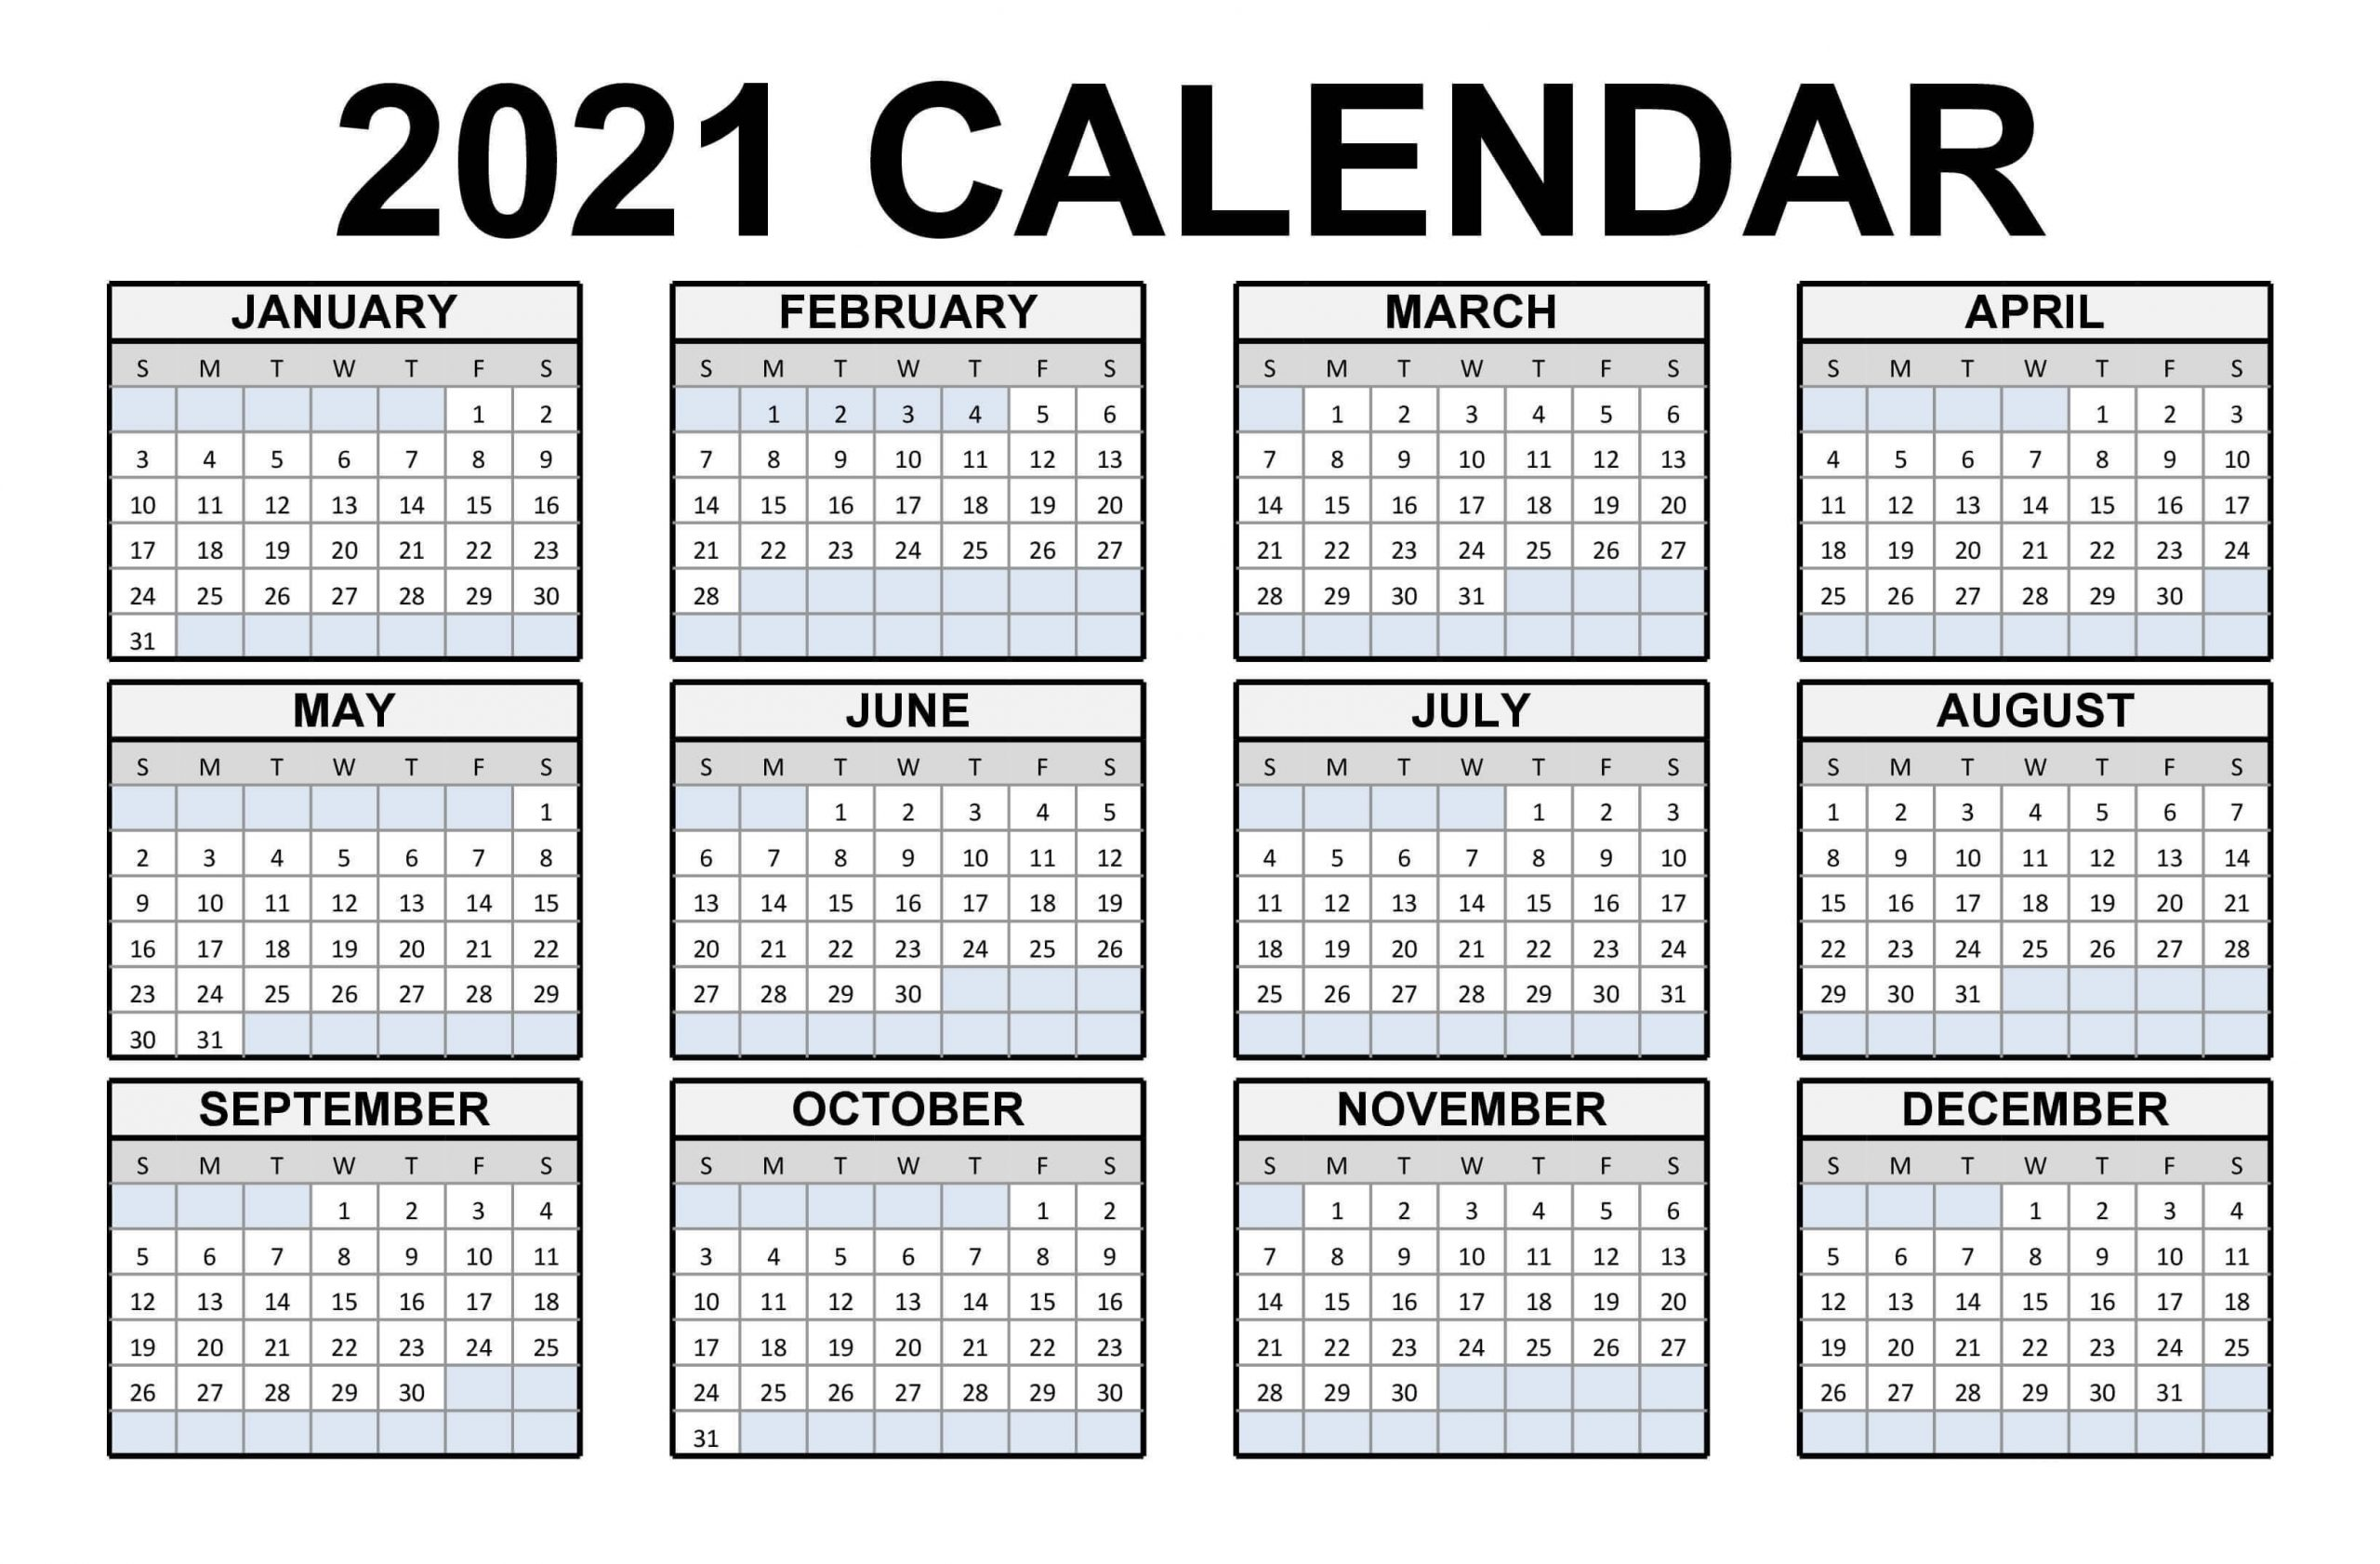 Free Printable Calendar 2021 In Pdf Word Excel Template within 2021 Calendar Printable One Page